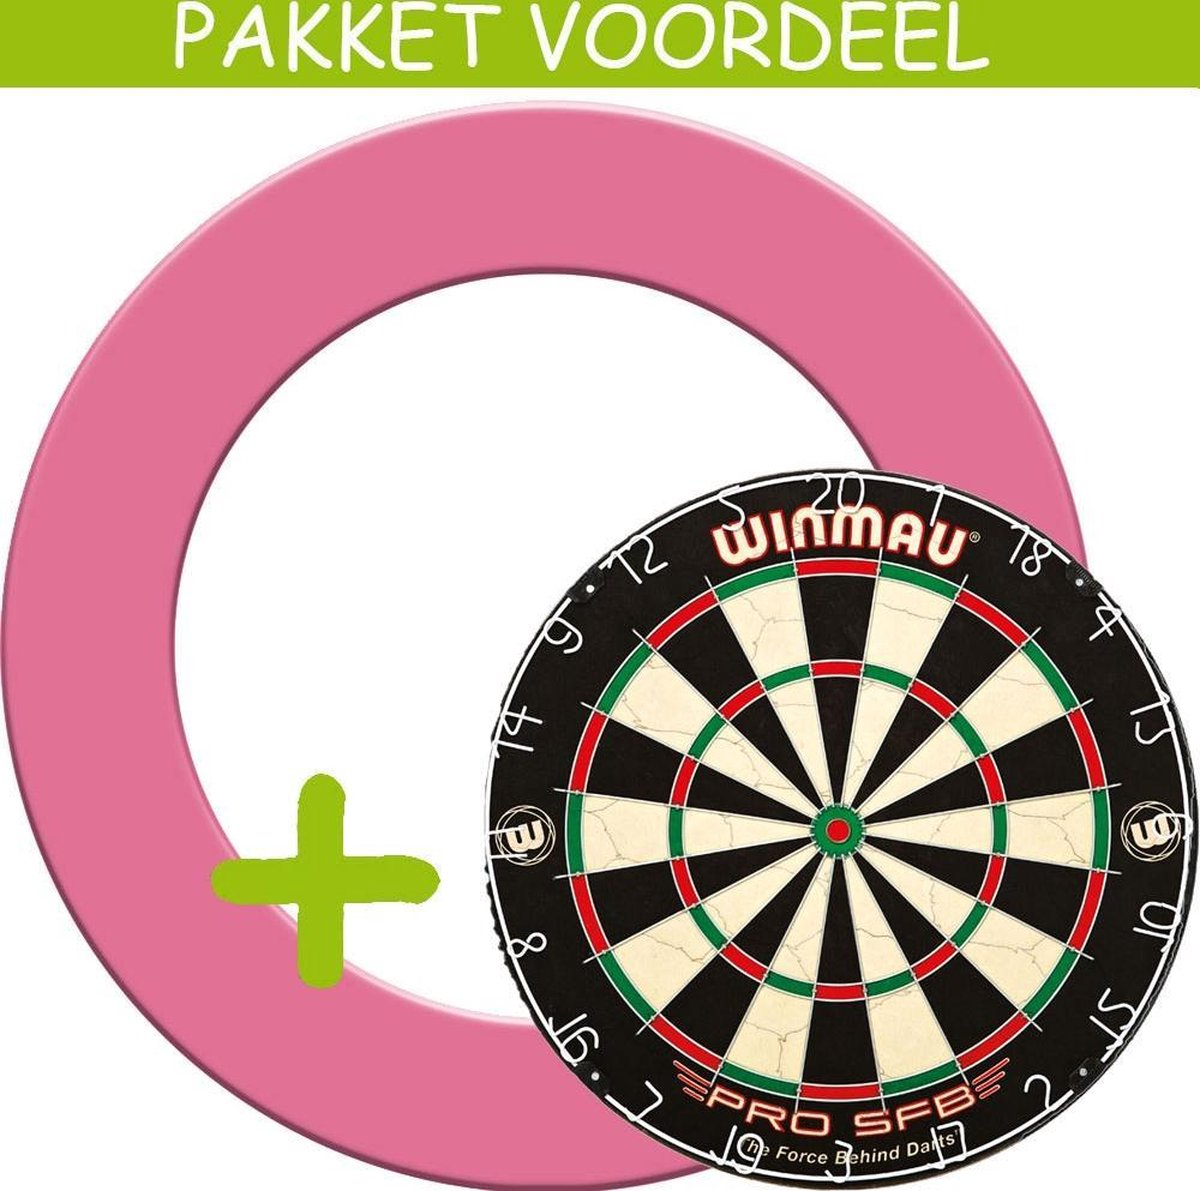 Dartbord Surround VoordeelPakket - Pro SFB - Rubberen Surround-- (Roze)